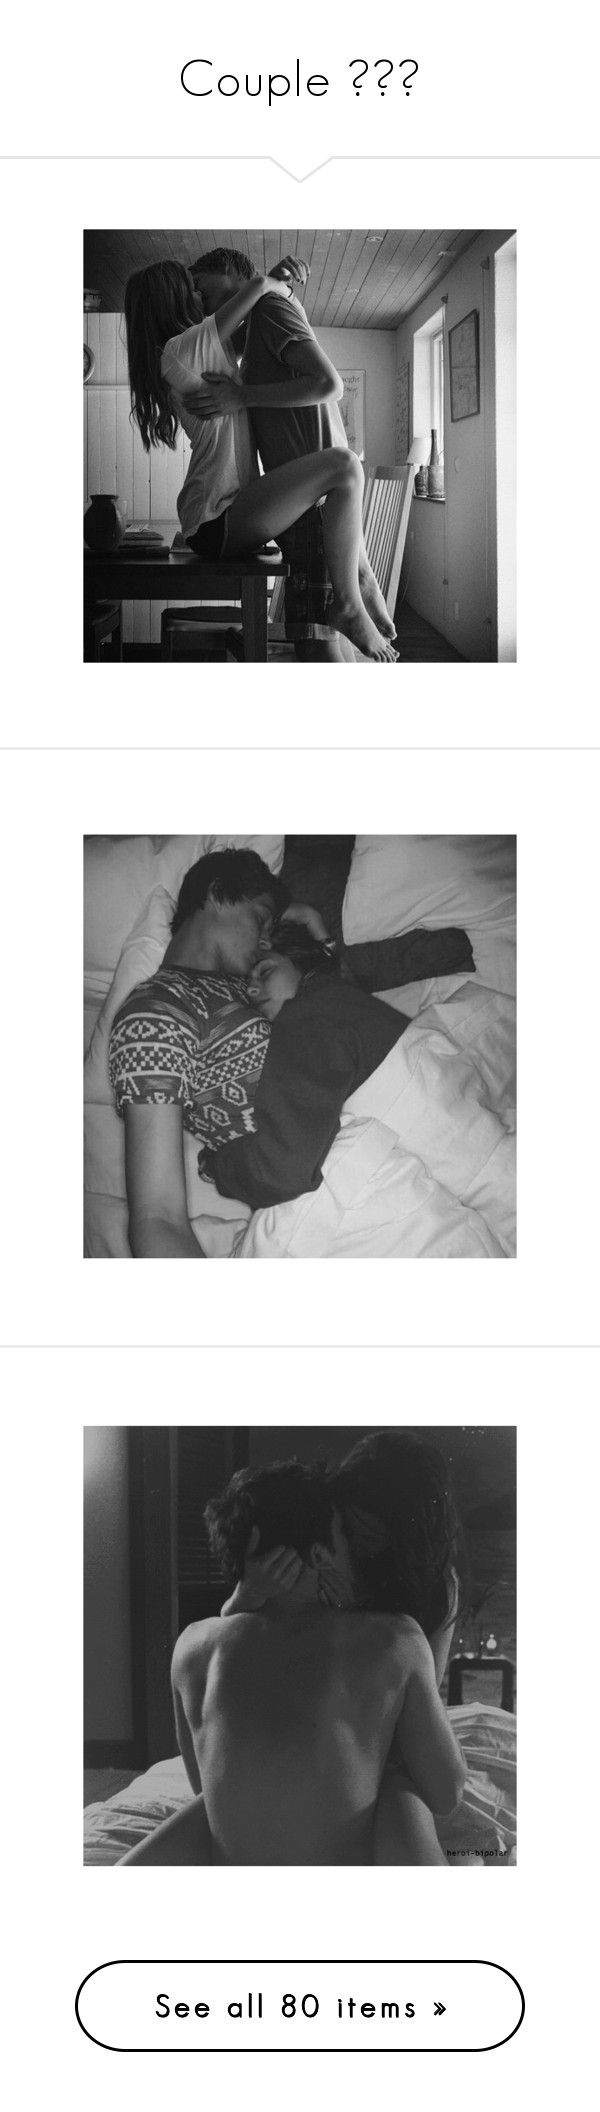 """Couple ❤️"" by wwemelody ❤ liked on Polyvore featuring couples, pictures, black and white, backgrounds, love, black & white, b&w, misc, pics and sexy"